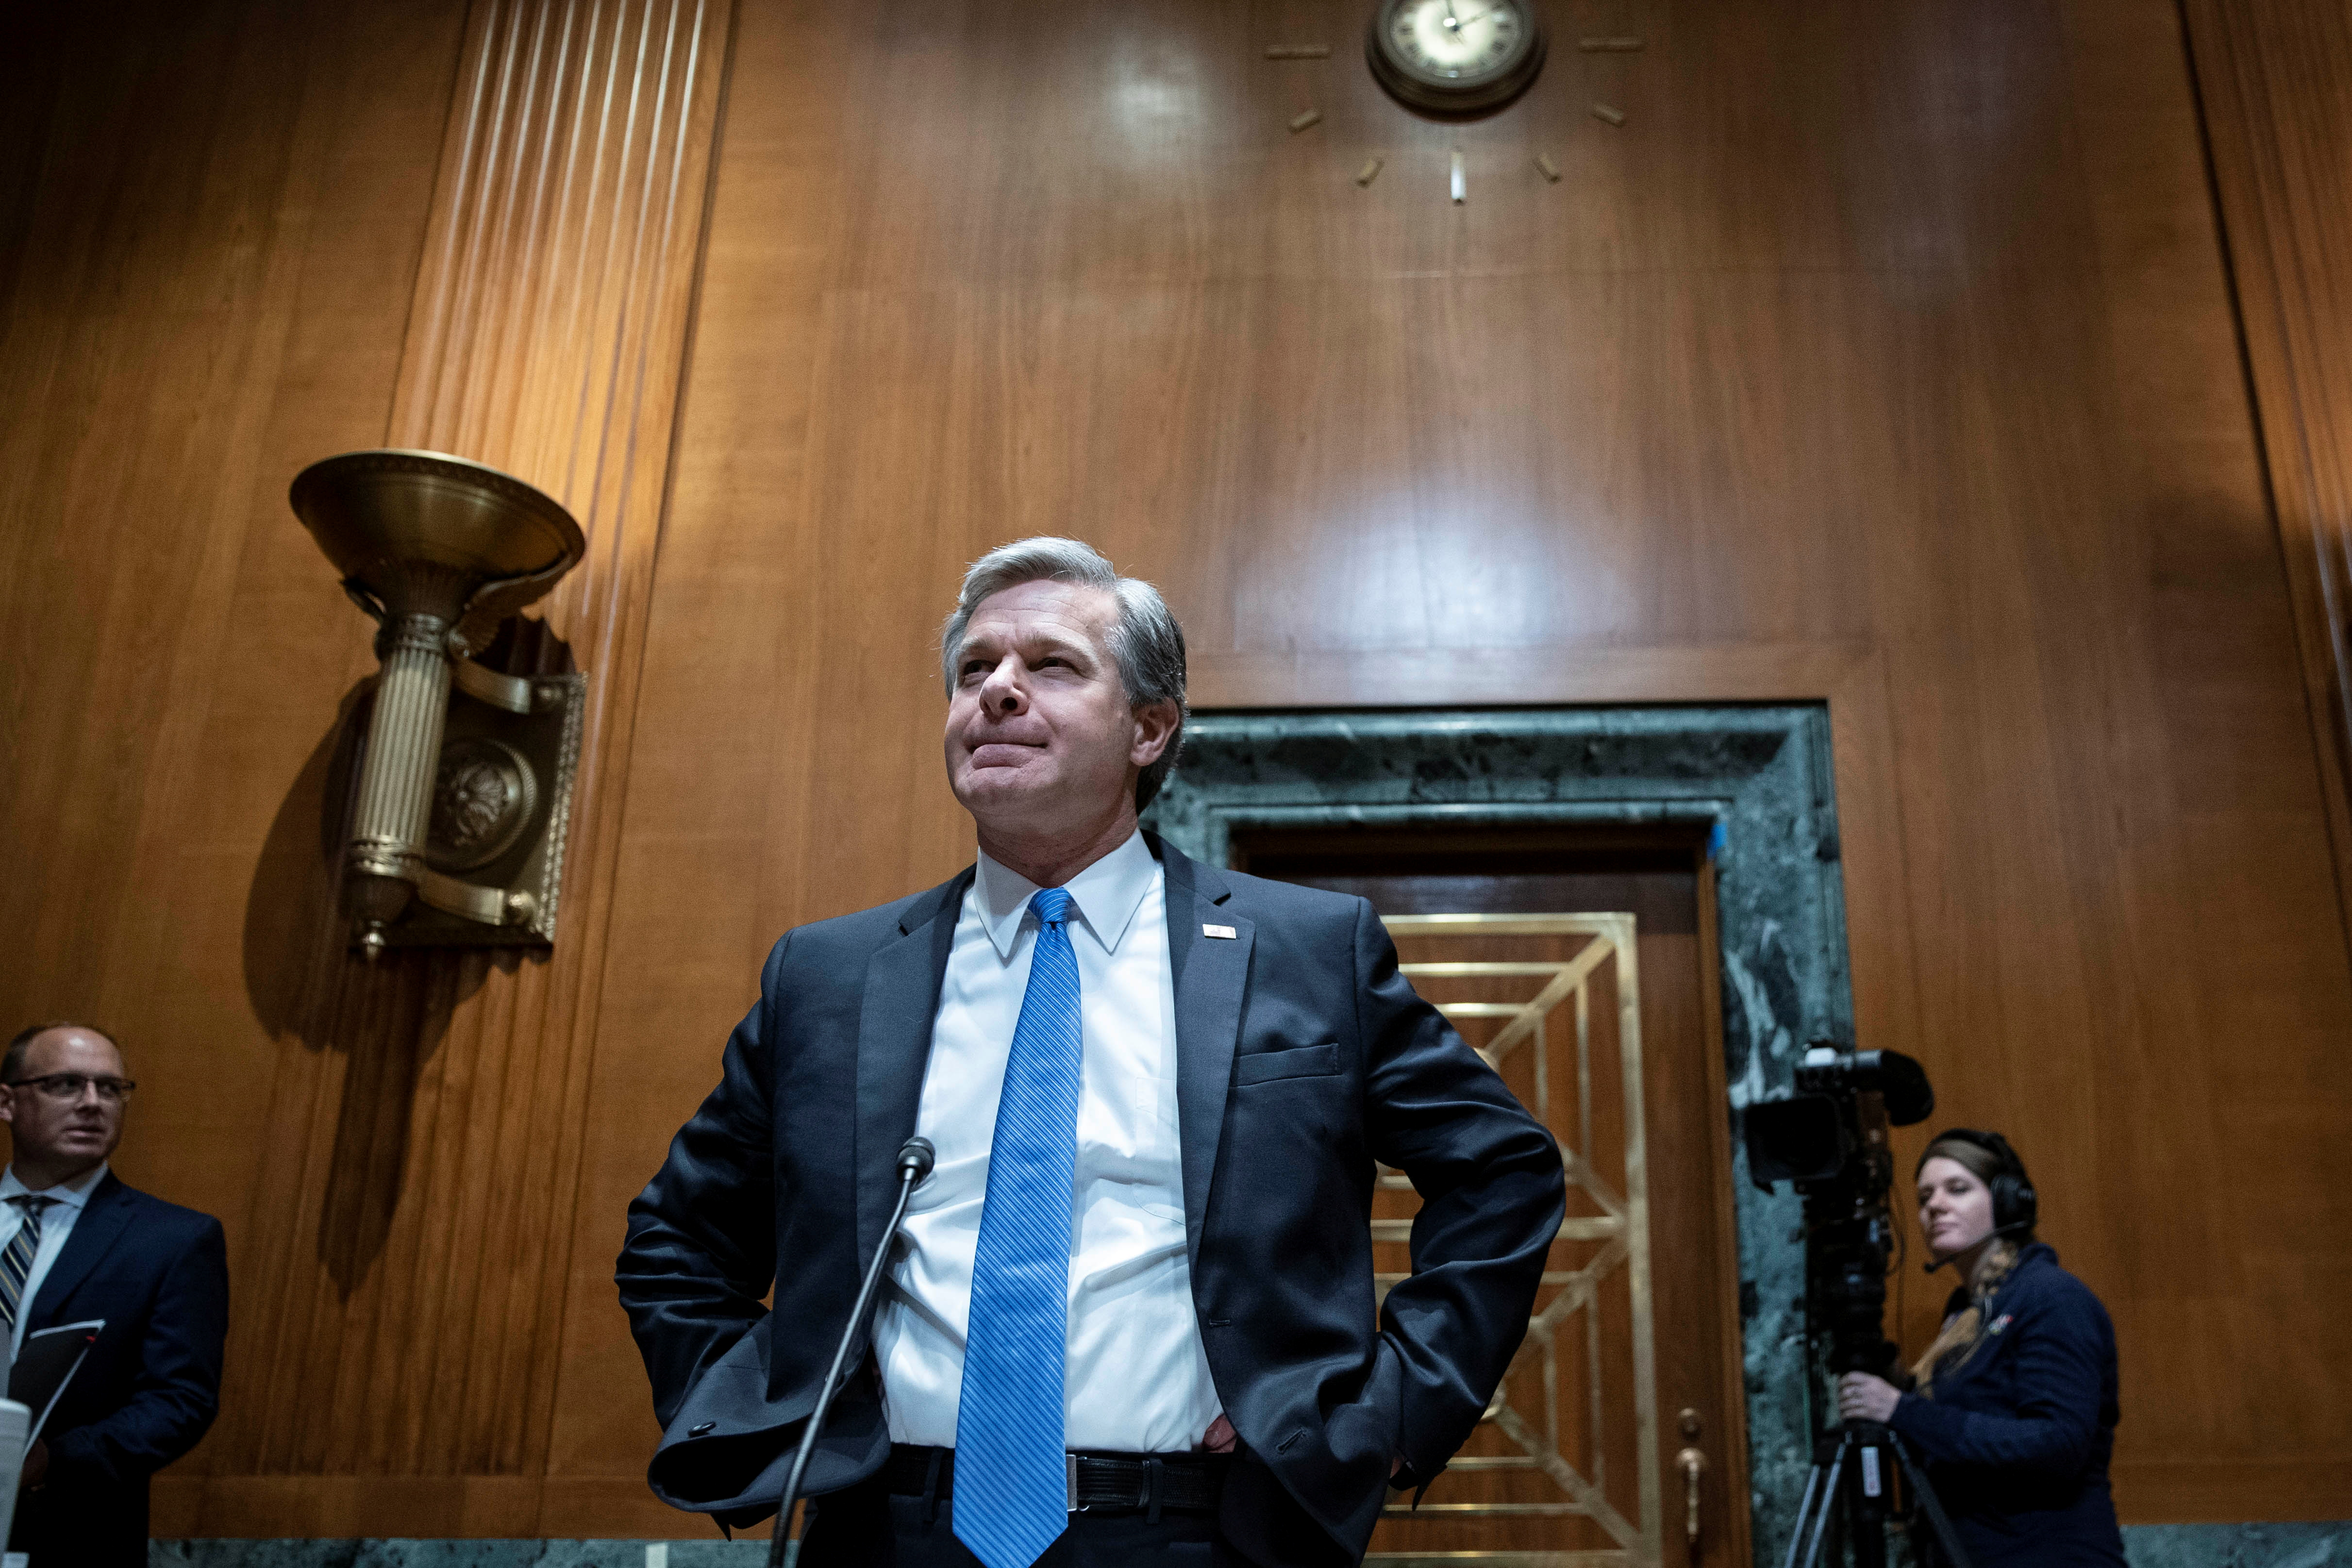 Federal Bureau of Investigation (FBI) Director Christopher Wray prepares to testify before a Senate Appropriations Subcommittee on Commerce, Justice, Science, and Related Agencies on Capitol Hill in Washington, U.S., June 23, 2021. Sarah Silbiger/Pool via REUTERS